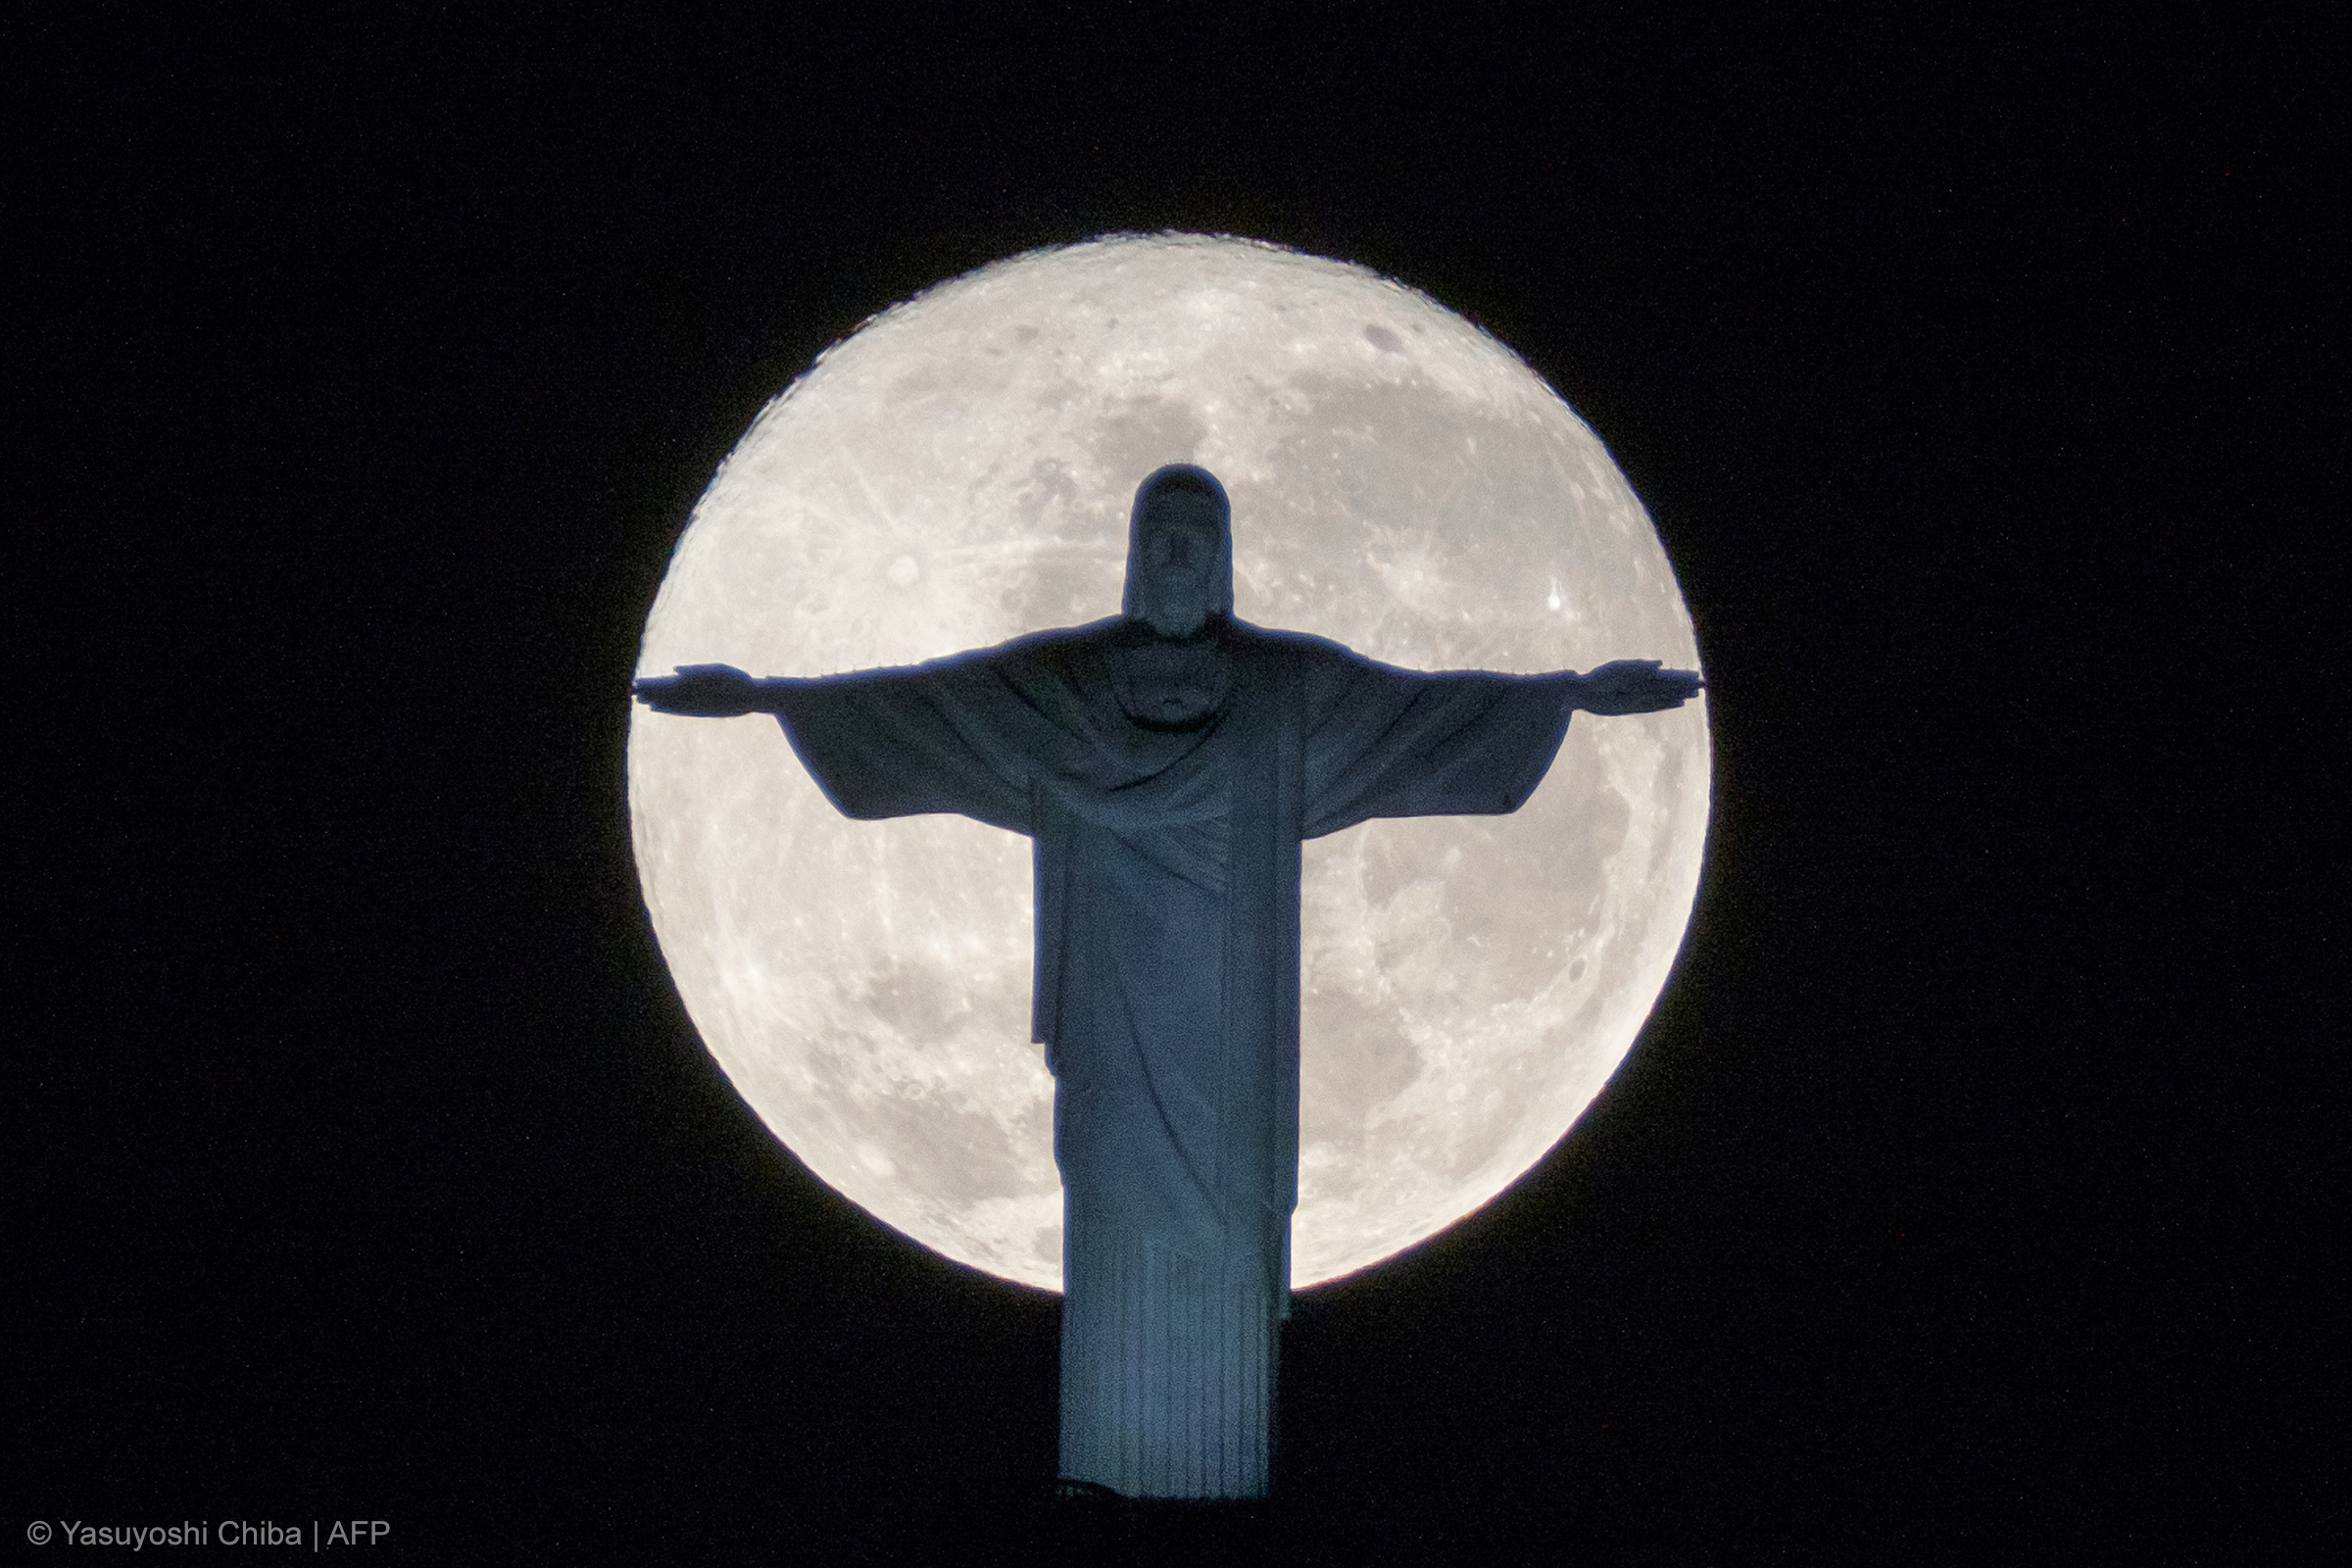 MOON,CHRIST THE REDEEMER